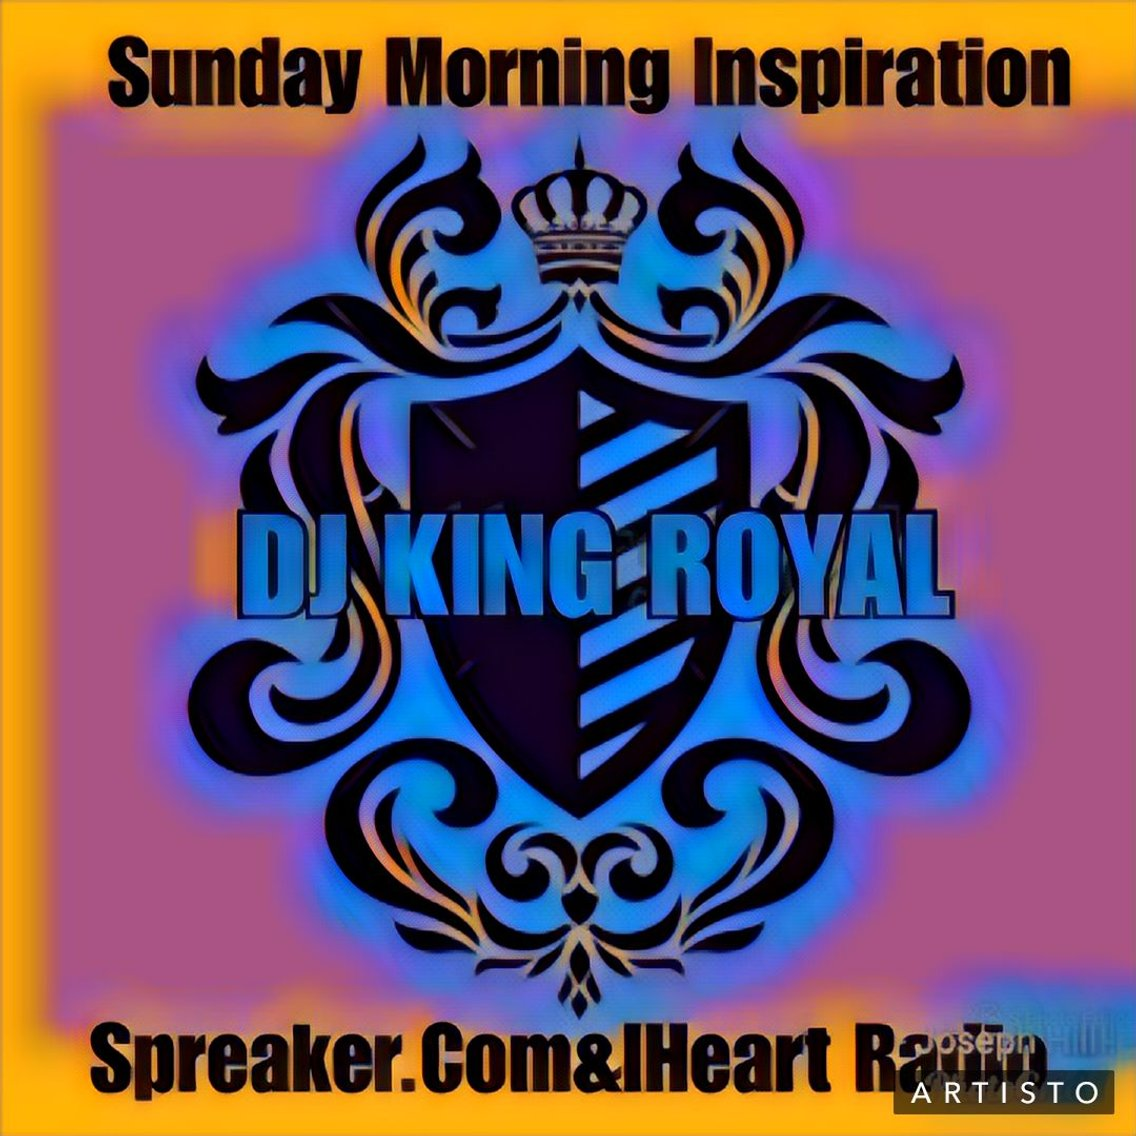 THE KING ROYAL SHOW #WBRP - Cover Image